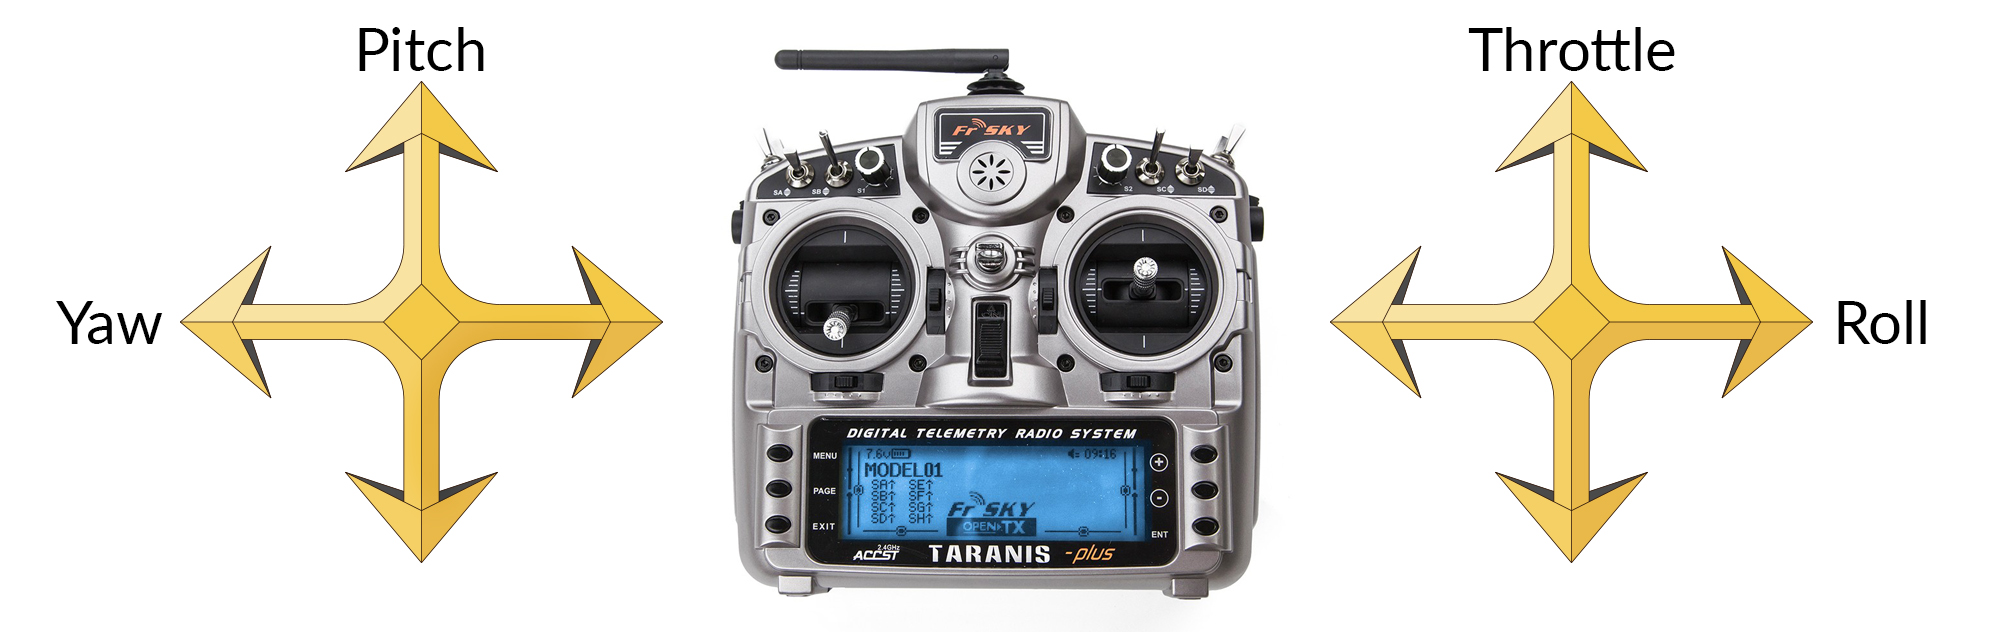 Choosing the Right Transmitter Mode | GetFPV Learn